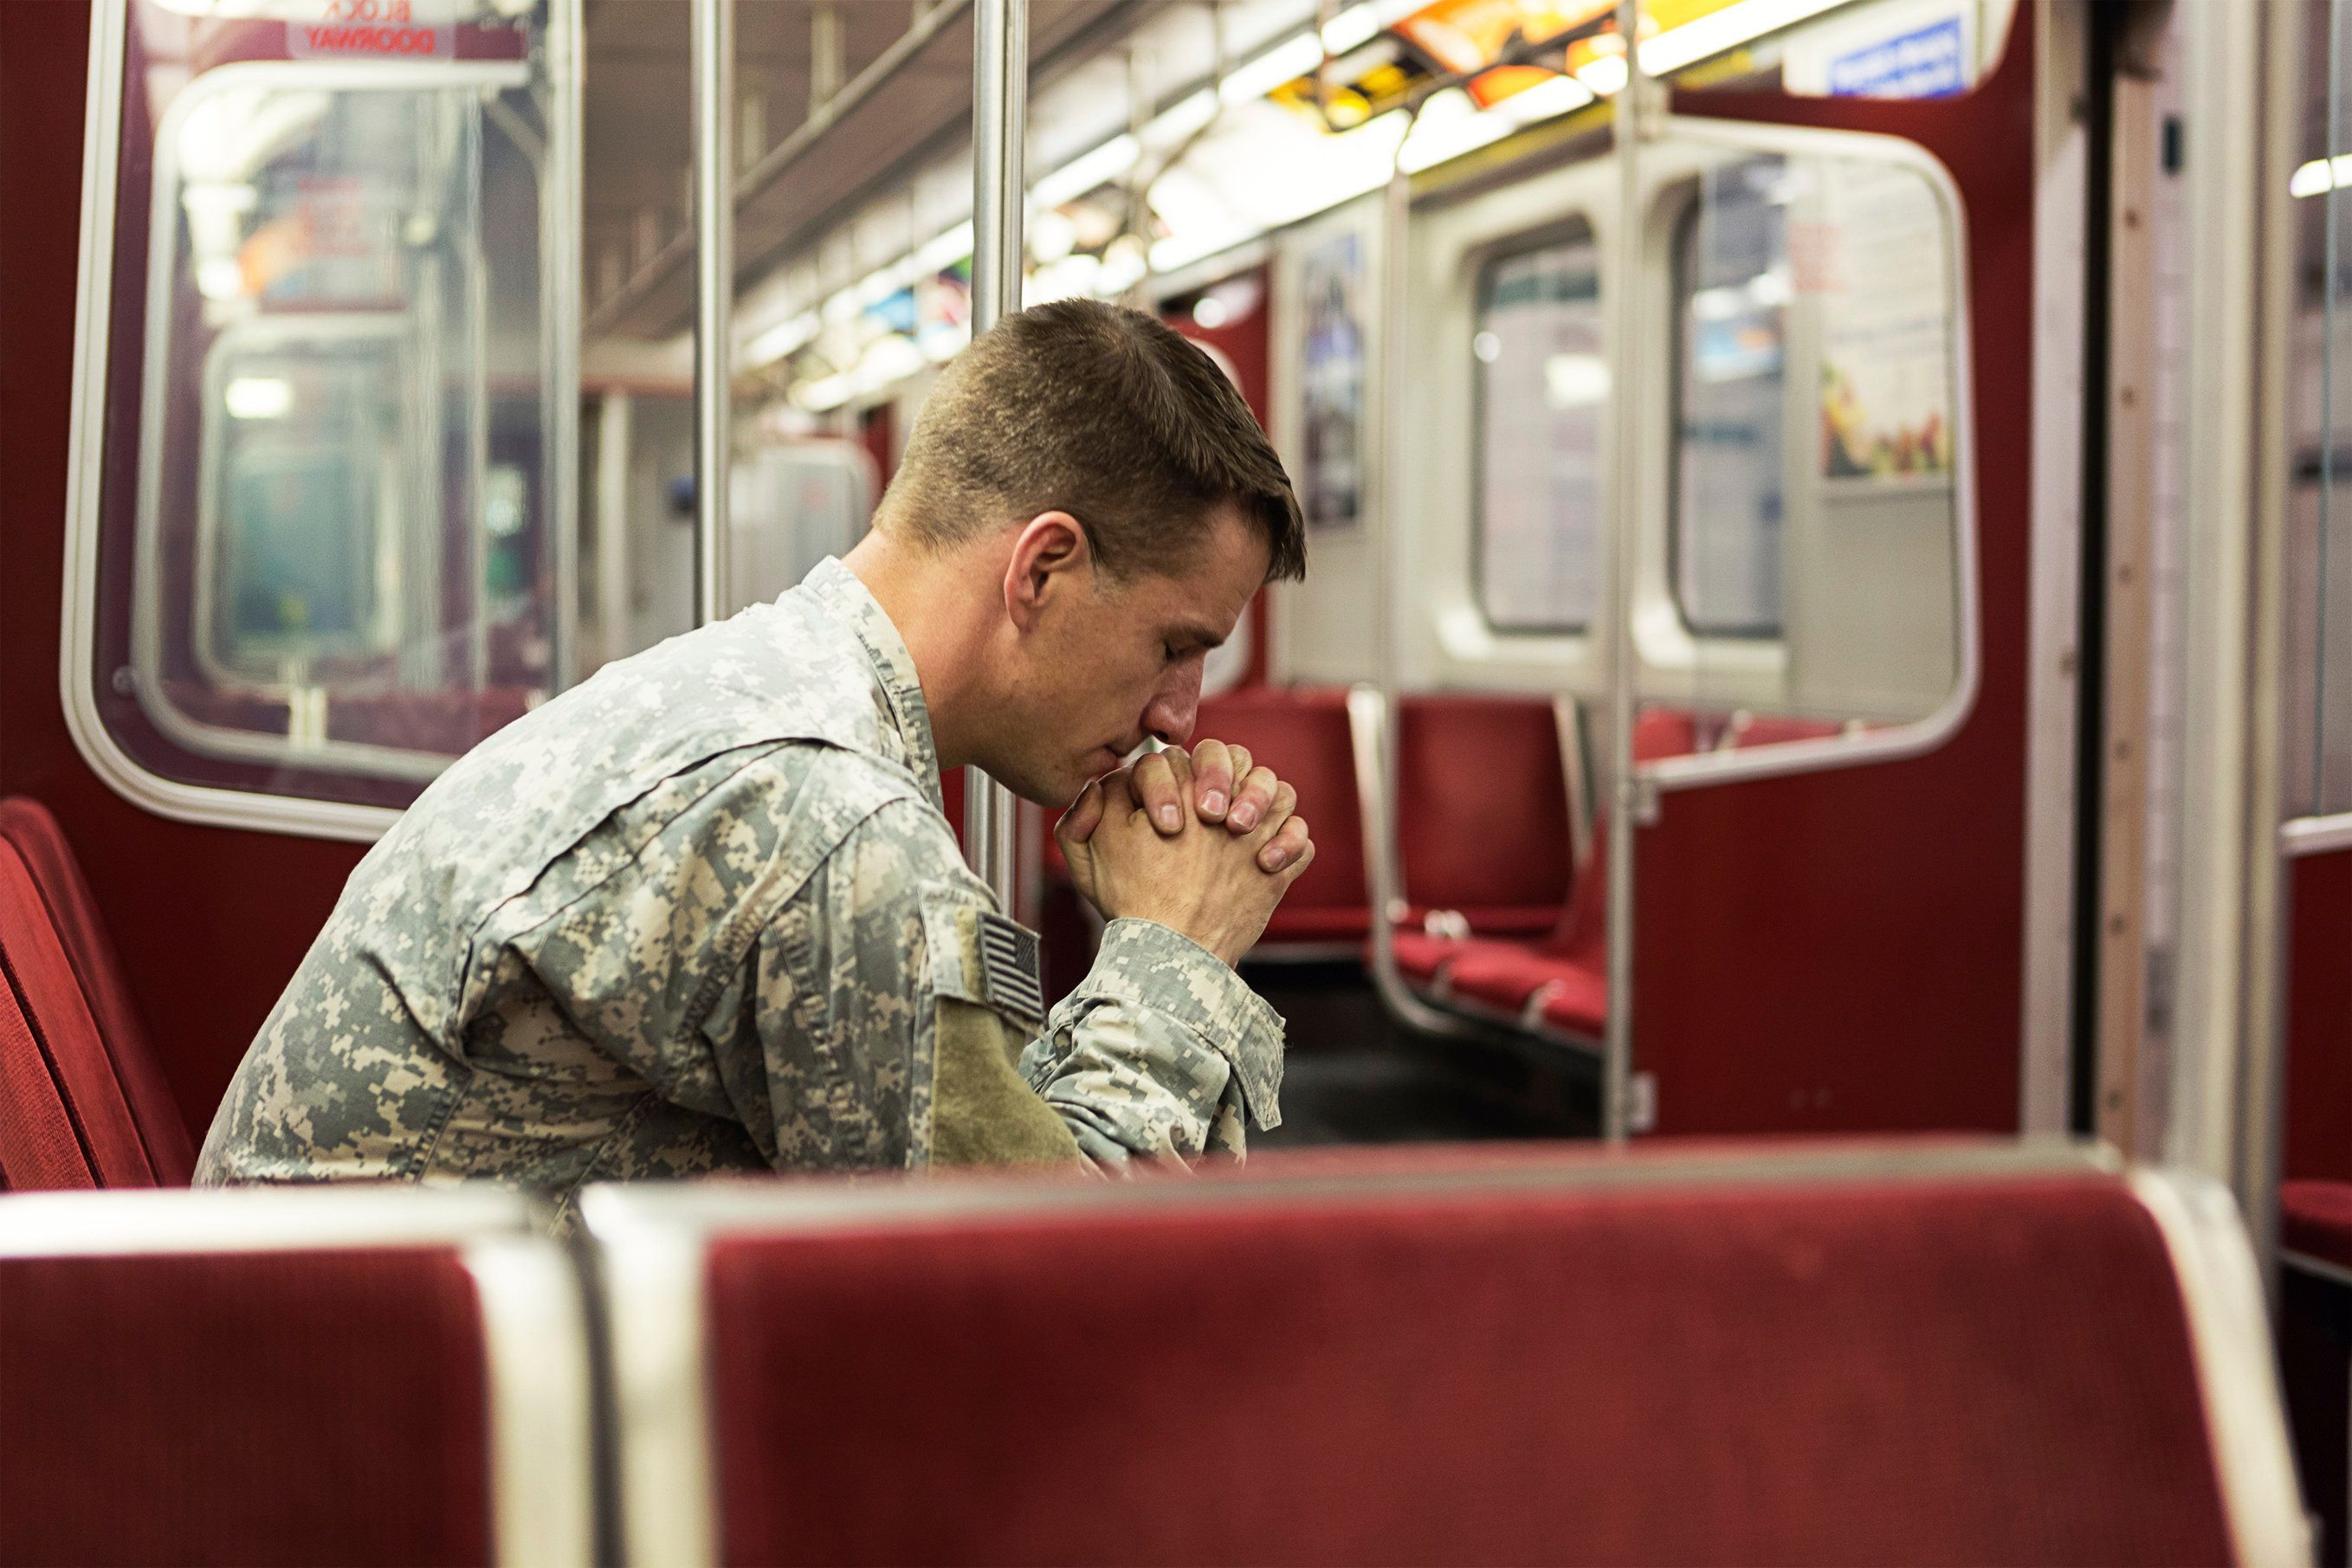 According to a new study, veterans were more likely to die by suicide during the first year after they left the military than